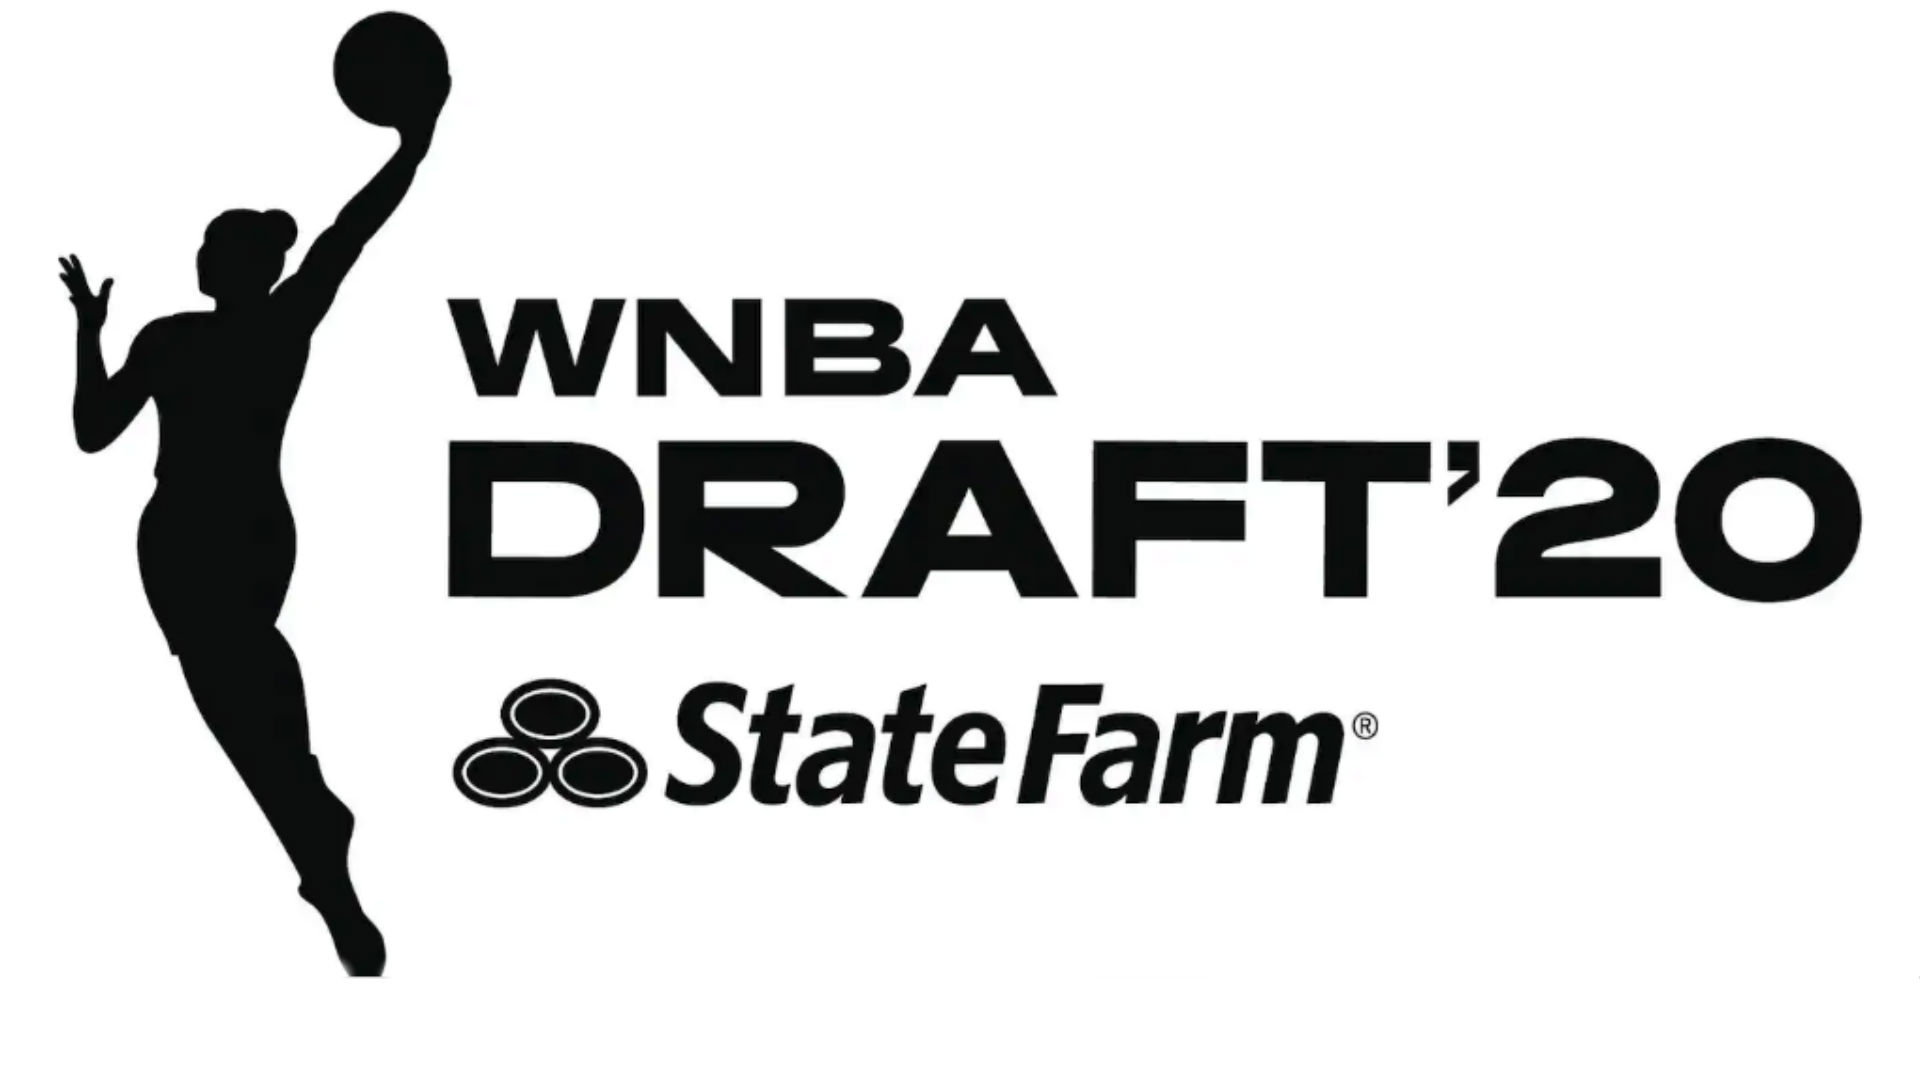 WNBA Draft 2020 date, TV channel, pick order, odds & everything else to know - sporting news